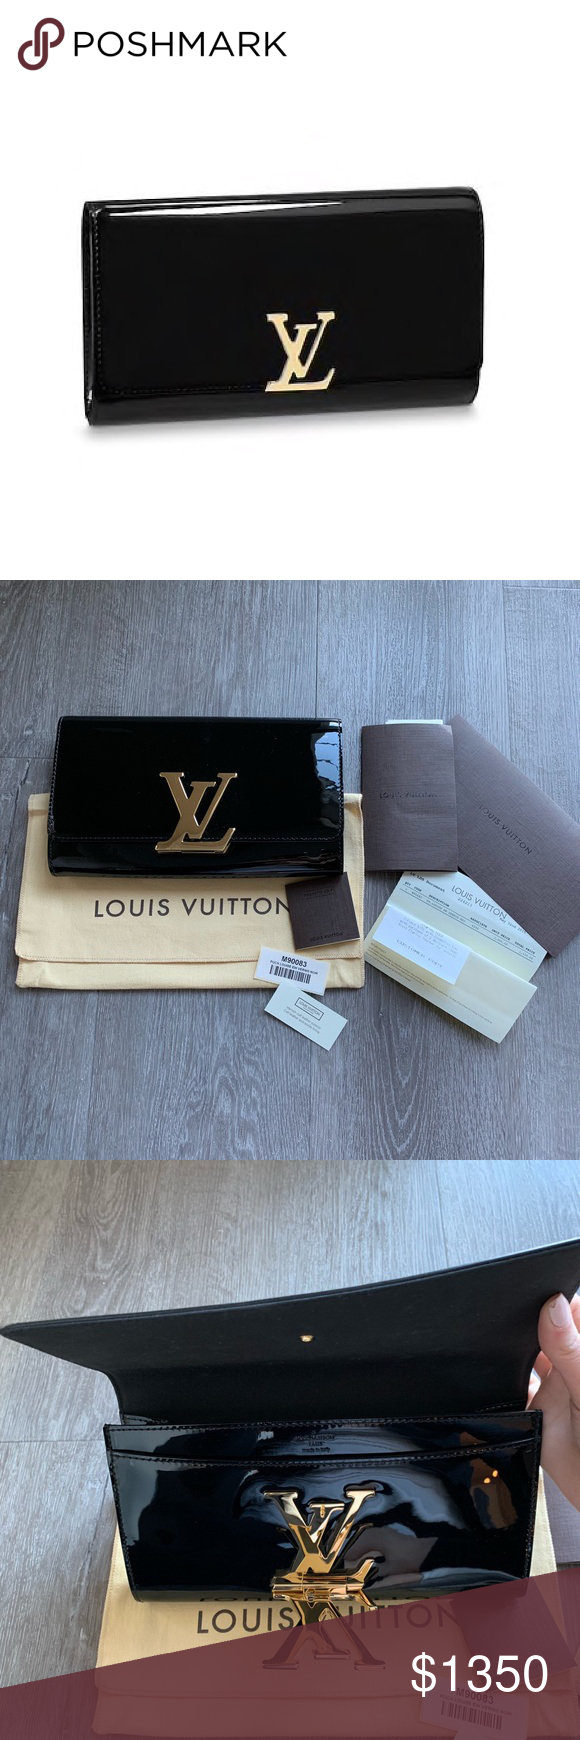 01322af51b04 Louis Vuitton Pochette Louise Ew Vernis Clutch Bag Louis Vuitton clutch  pochette Louise Ew vernis noi